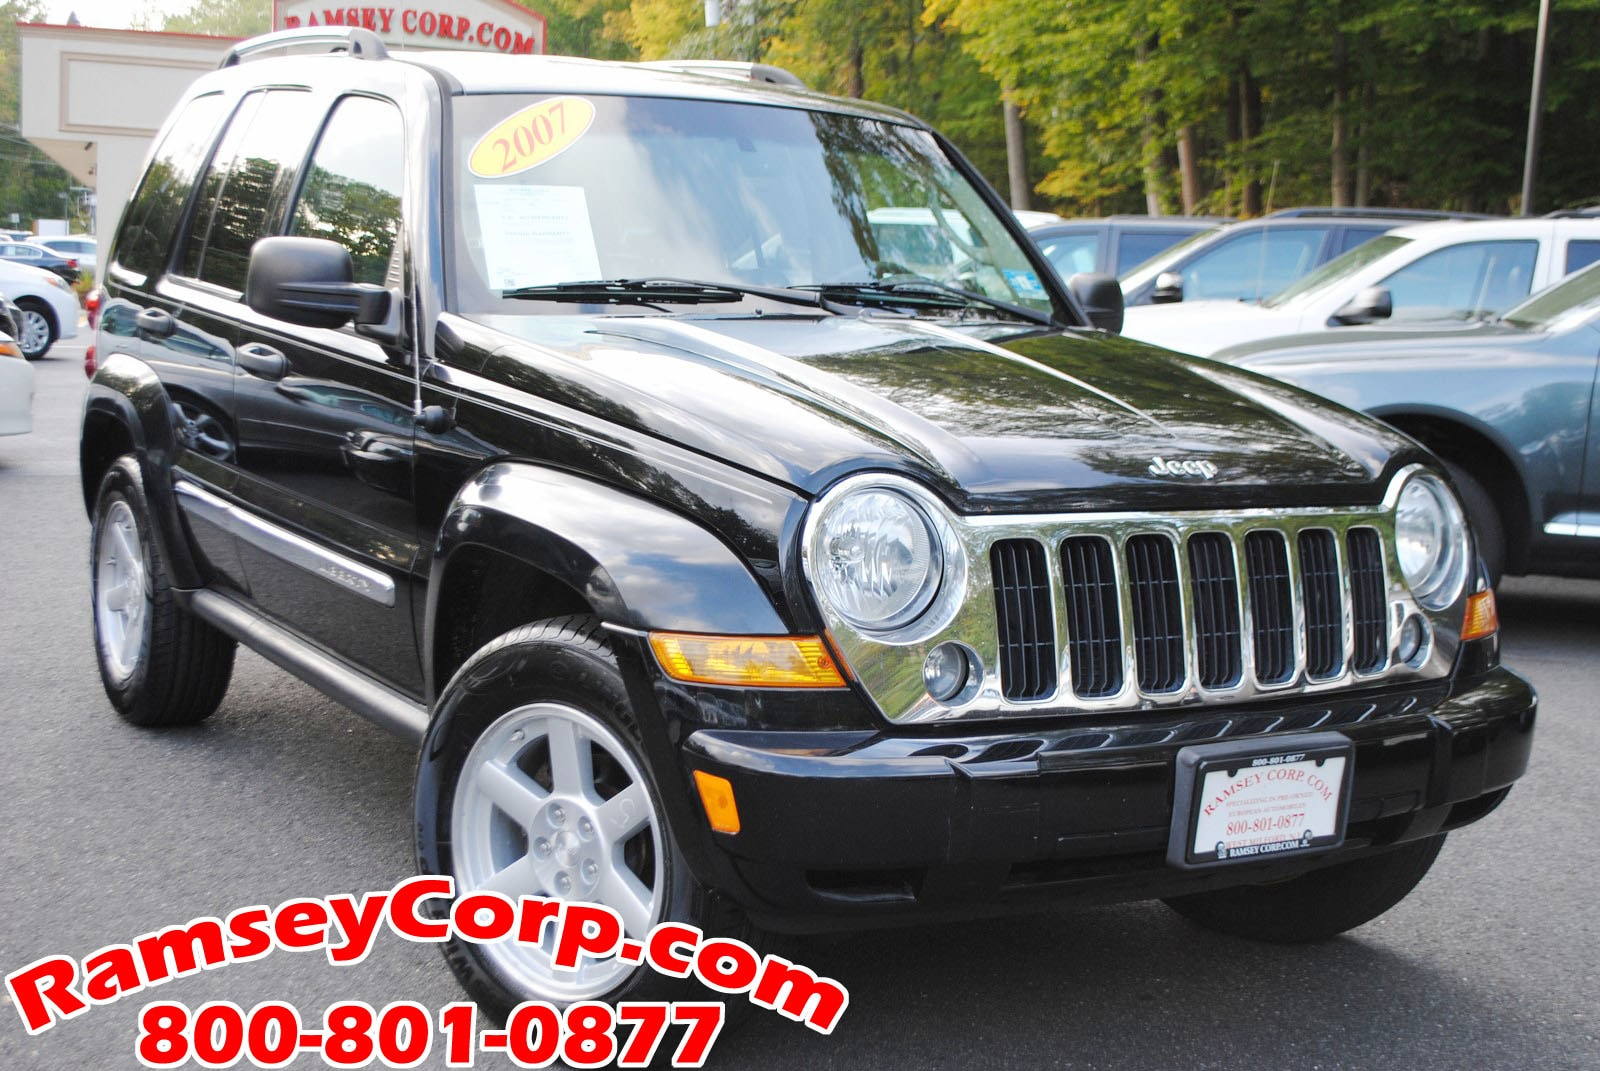 Awesome ... 2007 Jeep Liberty Limited Edition 3.7 SUV ...